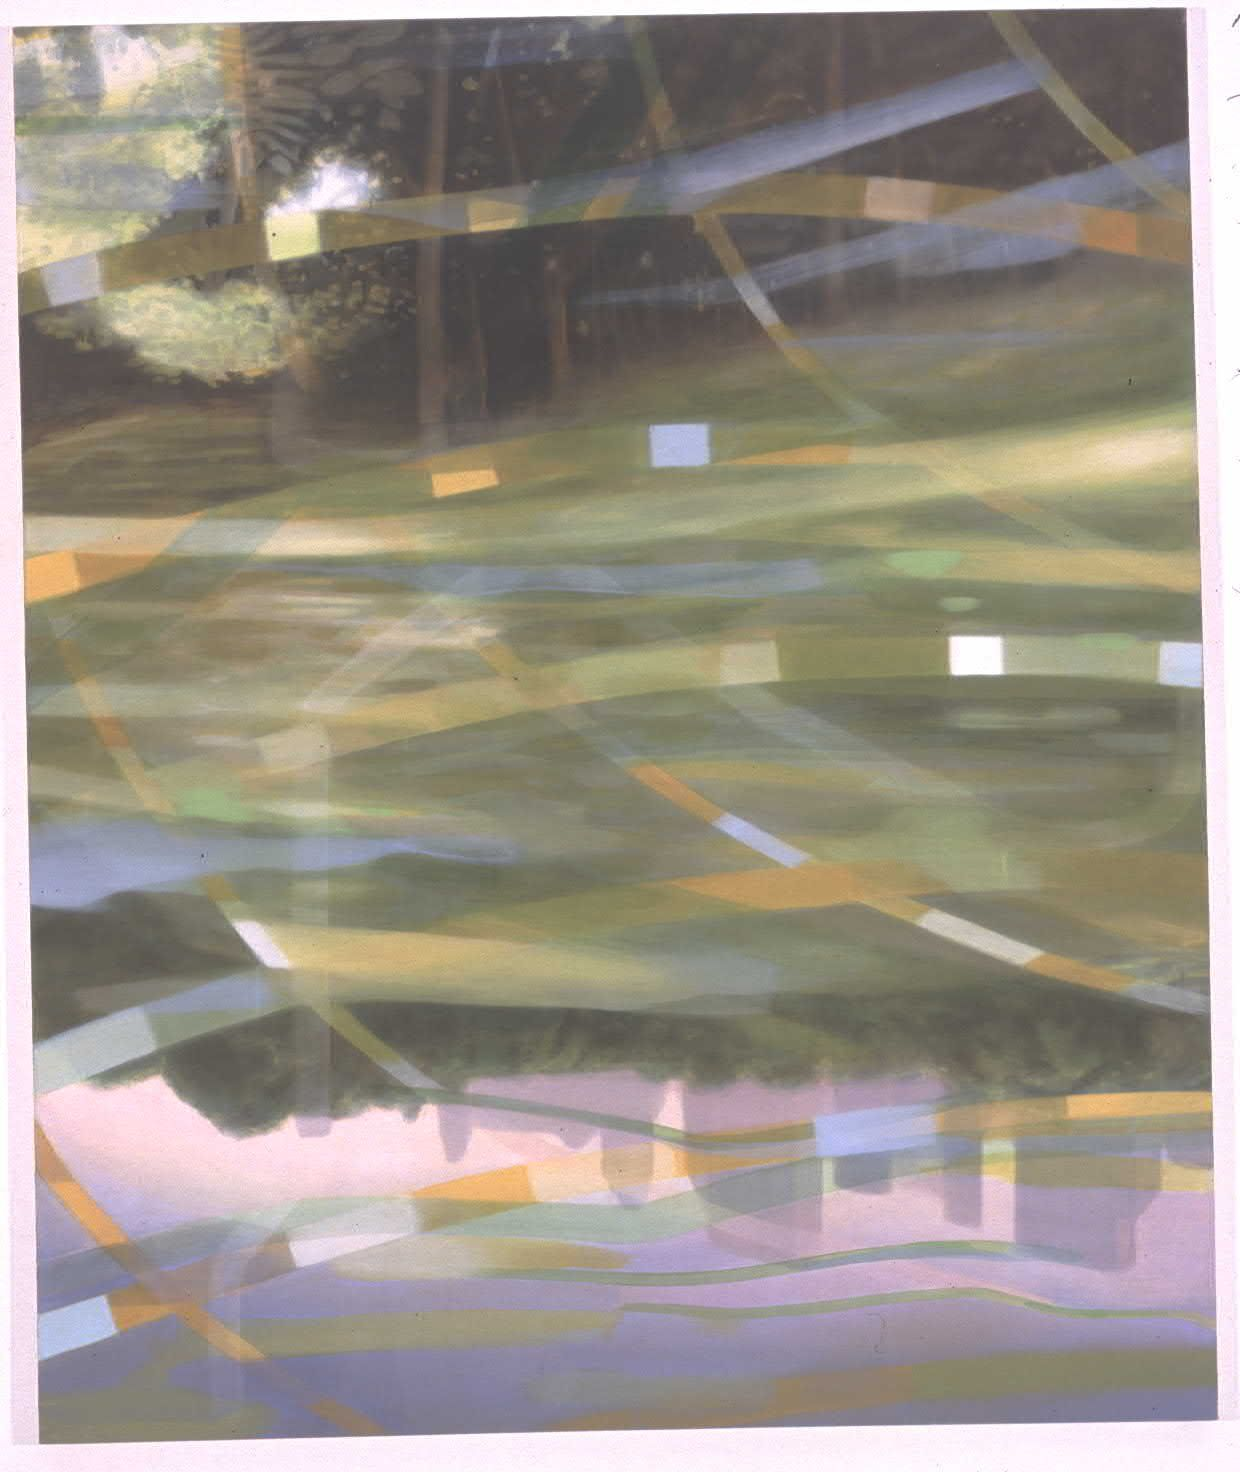 August Evening Walkout III, 2003, Oil on canvas, 72 x 60 inches